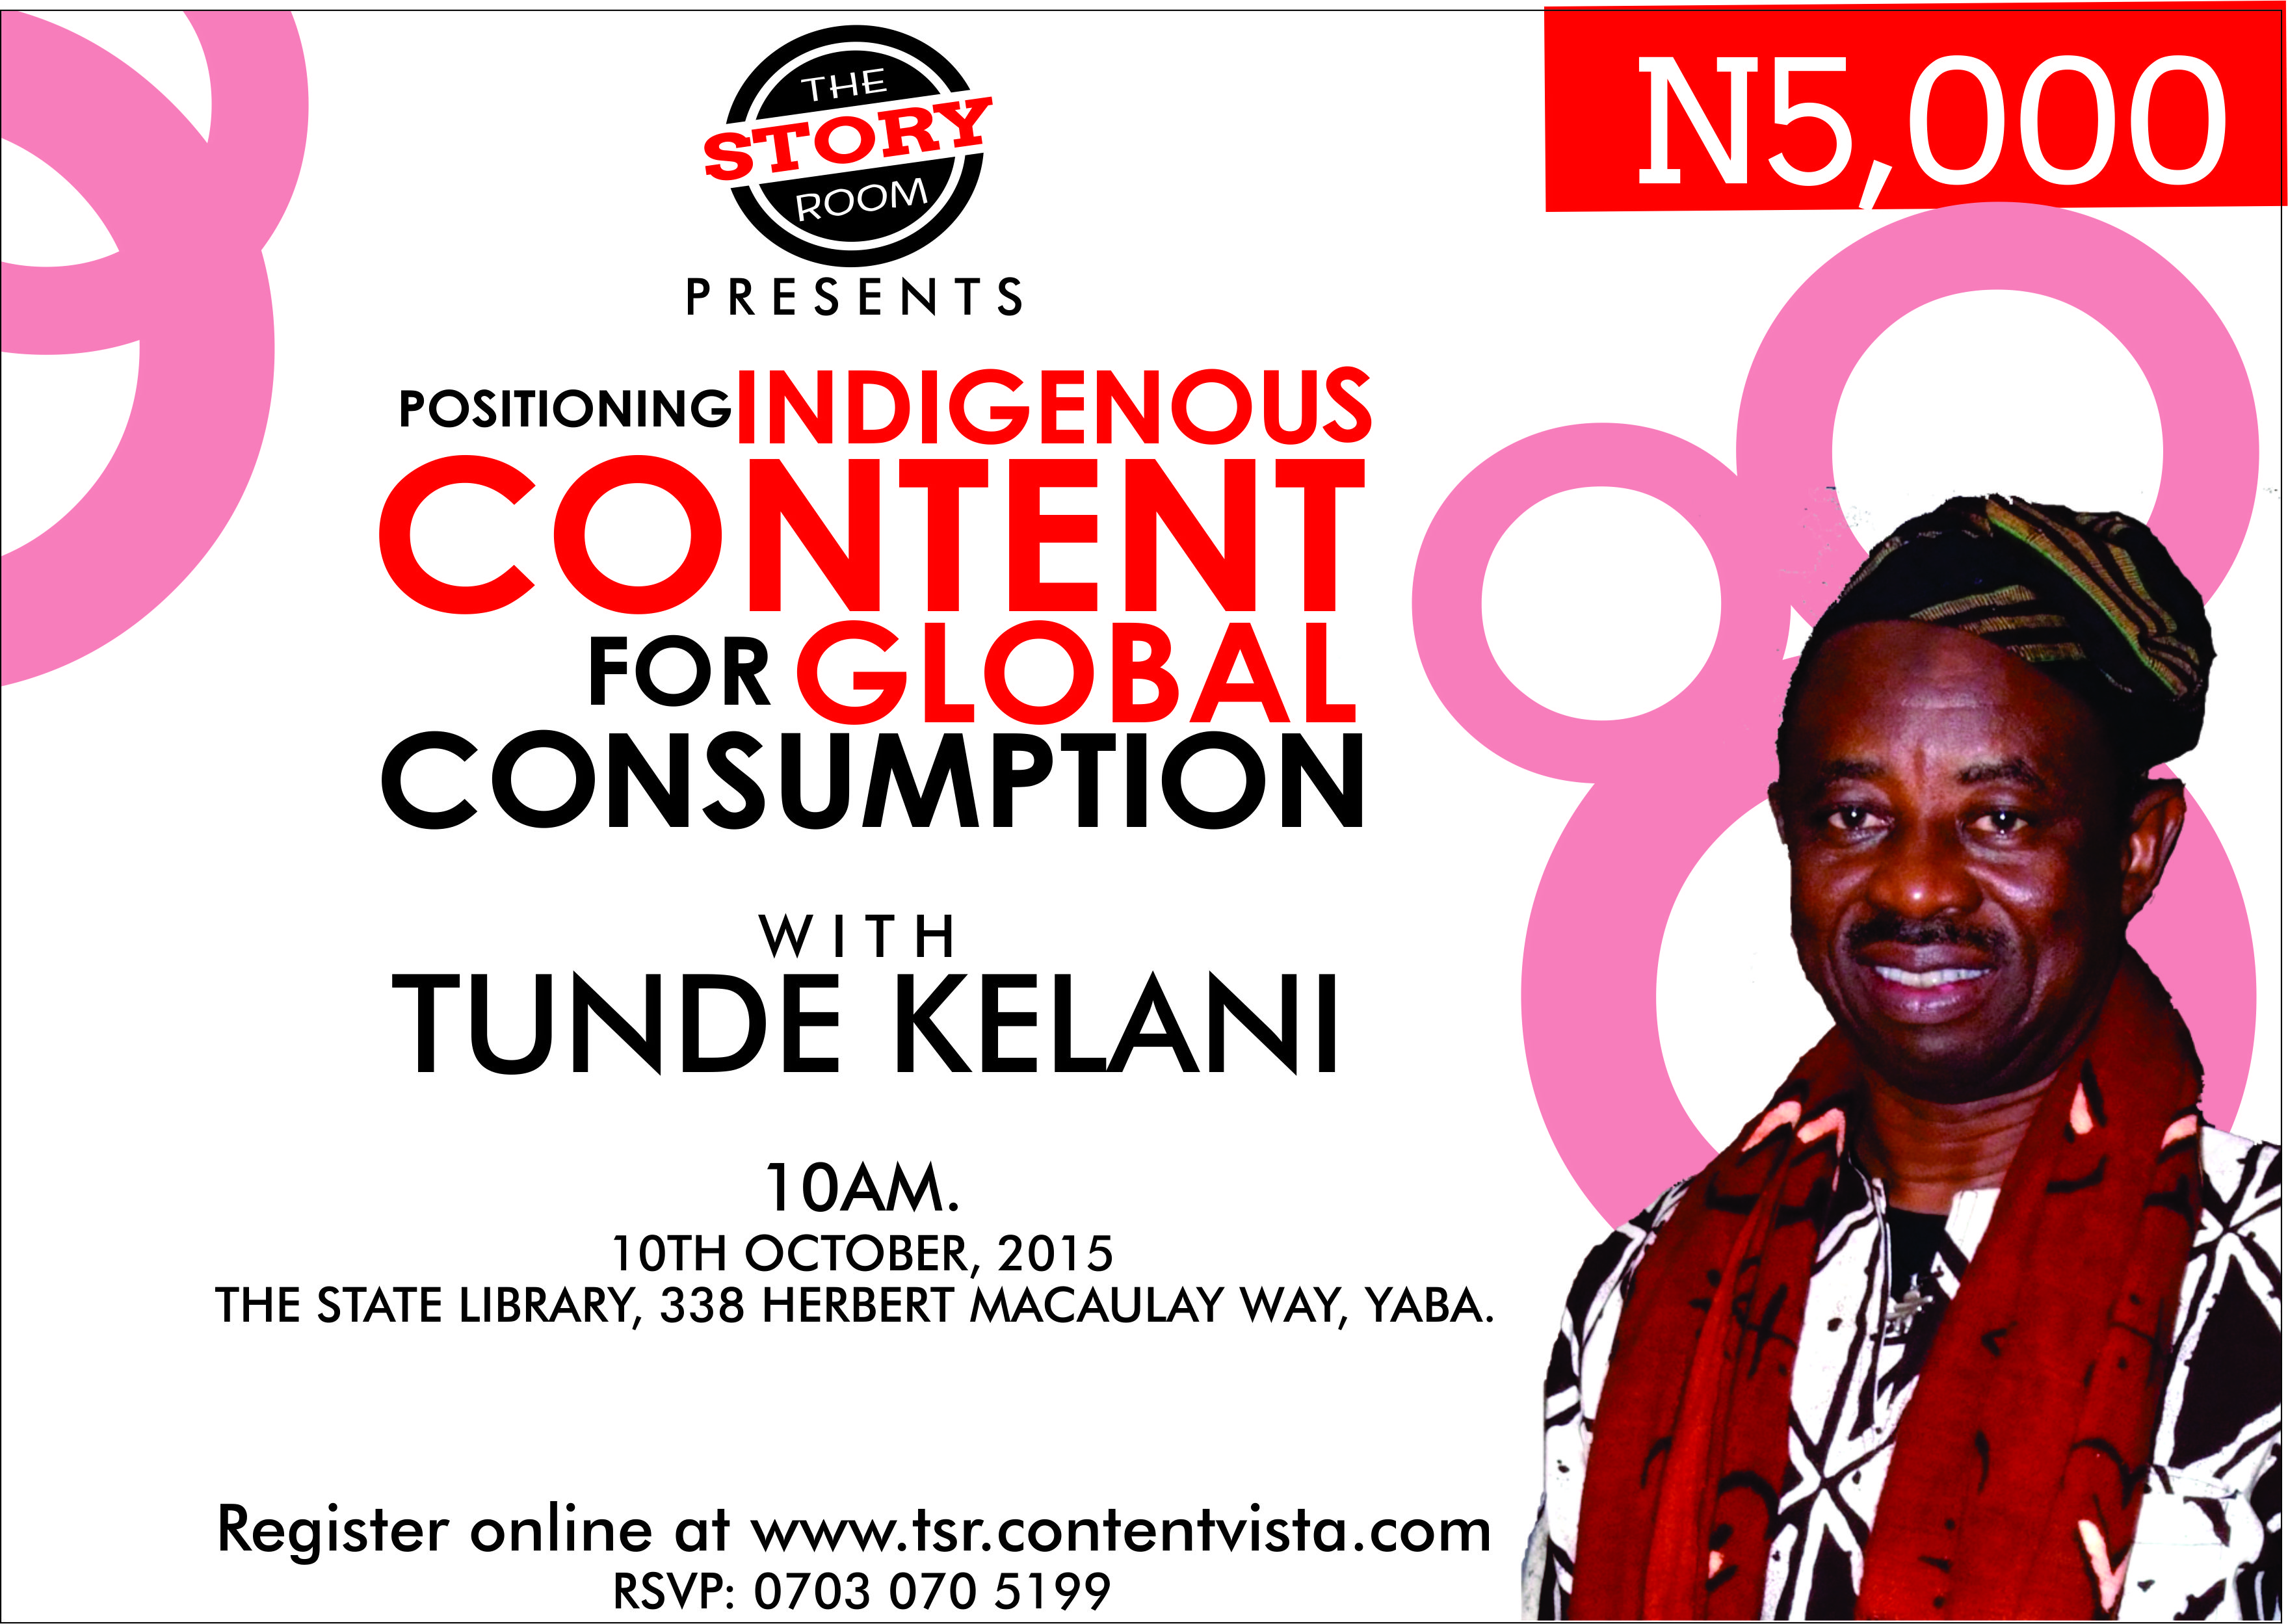 The Story Room: Tunde Kelani Set To Interact With Content Developers